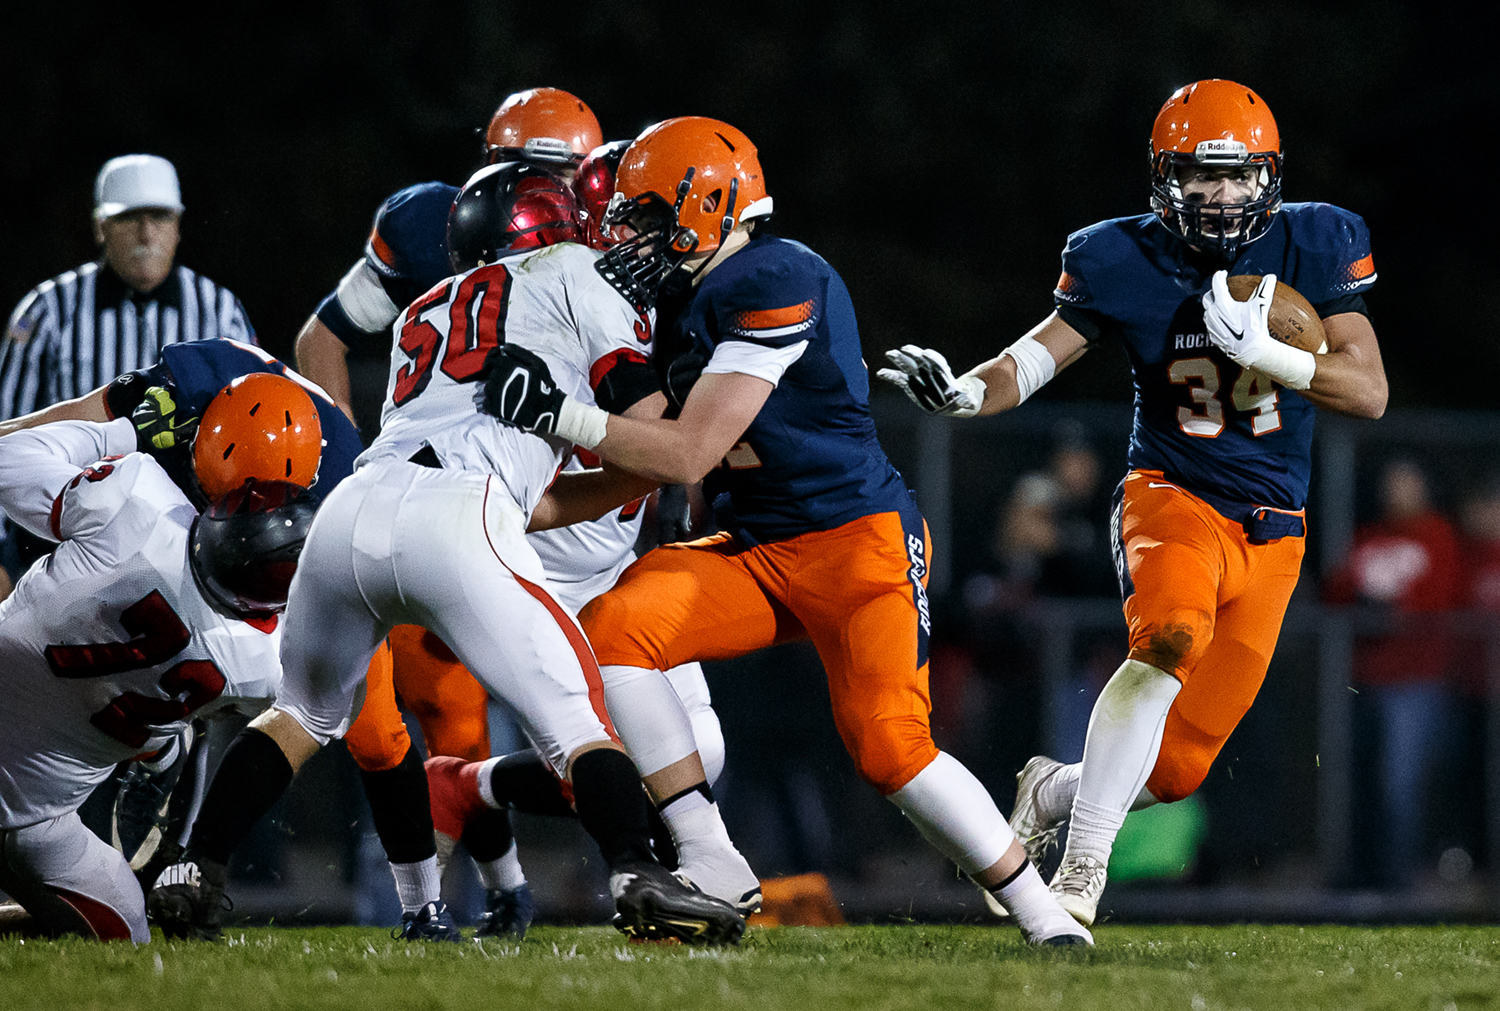 Rochester's Evan Sembell (34) stays behind his blockers as he finds a hole against Mt. Zion on a rush in the first half during the first round of the Class 4A playoffs at Rocket Booster Field, Saturday, Nov. 1, 2014, in Rochester, Ill. Justin L. Fowler/The State Journal-Register